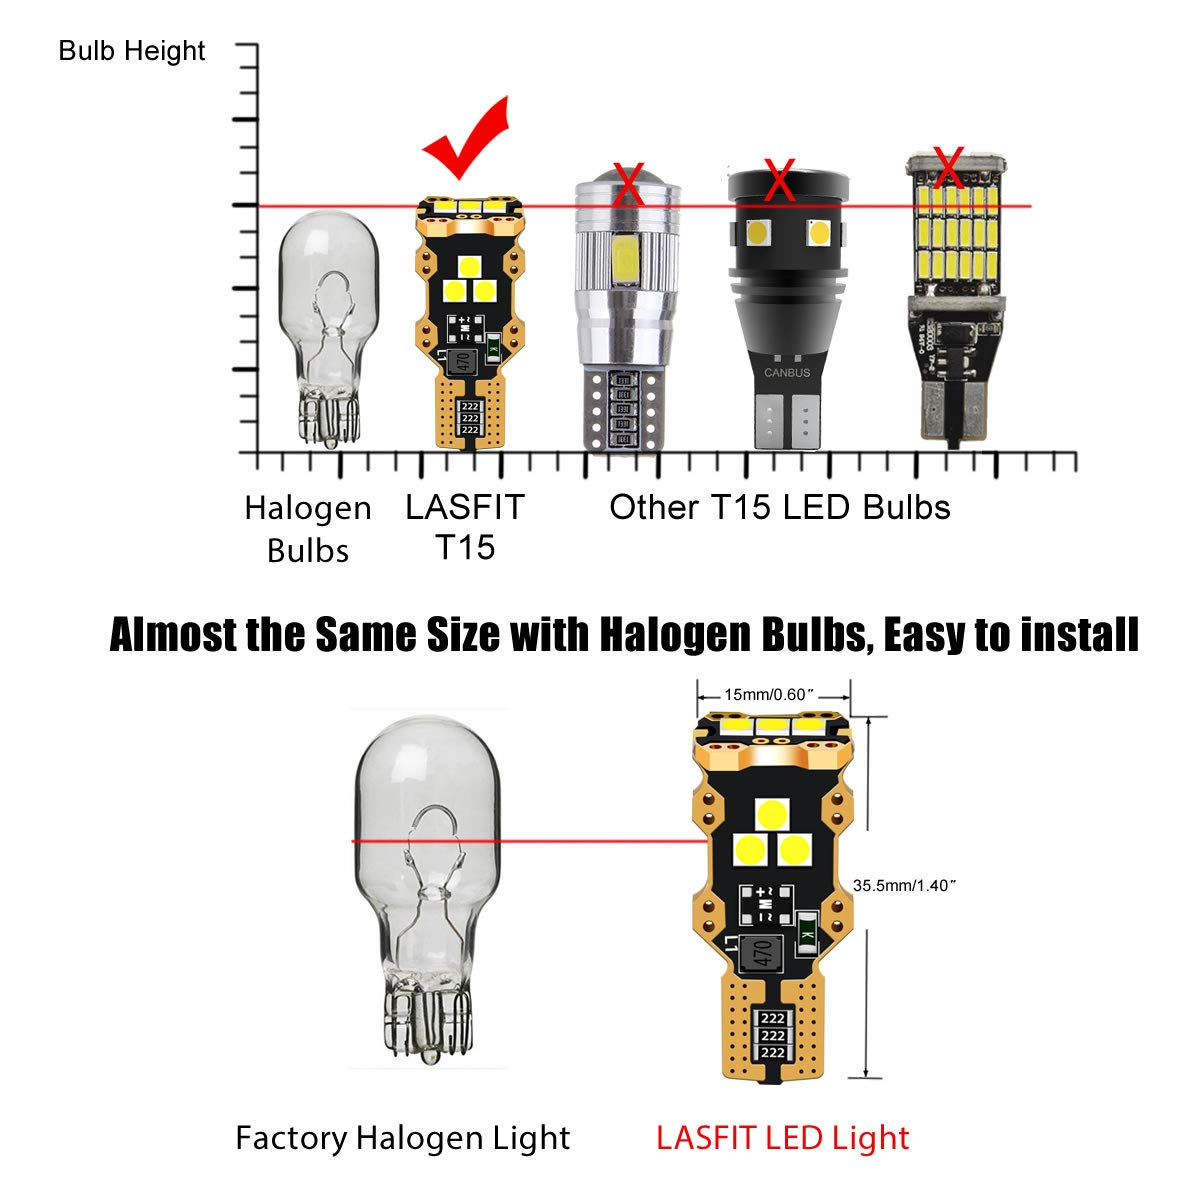 LASFIT 912 921 T15 906 W16W LED Light Bulb SMD 3030 Chipsets 1400 Lumens Extremely Bright for Car Interior Dome Trunk Reverse Backup Lights, Polarity Free, Xenon White(Pack of 2) by LASFIT (Image #6)